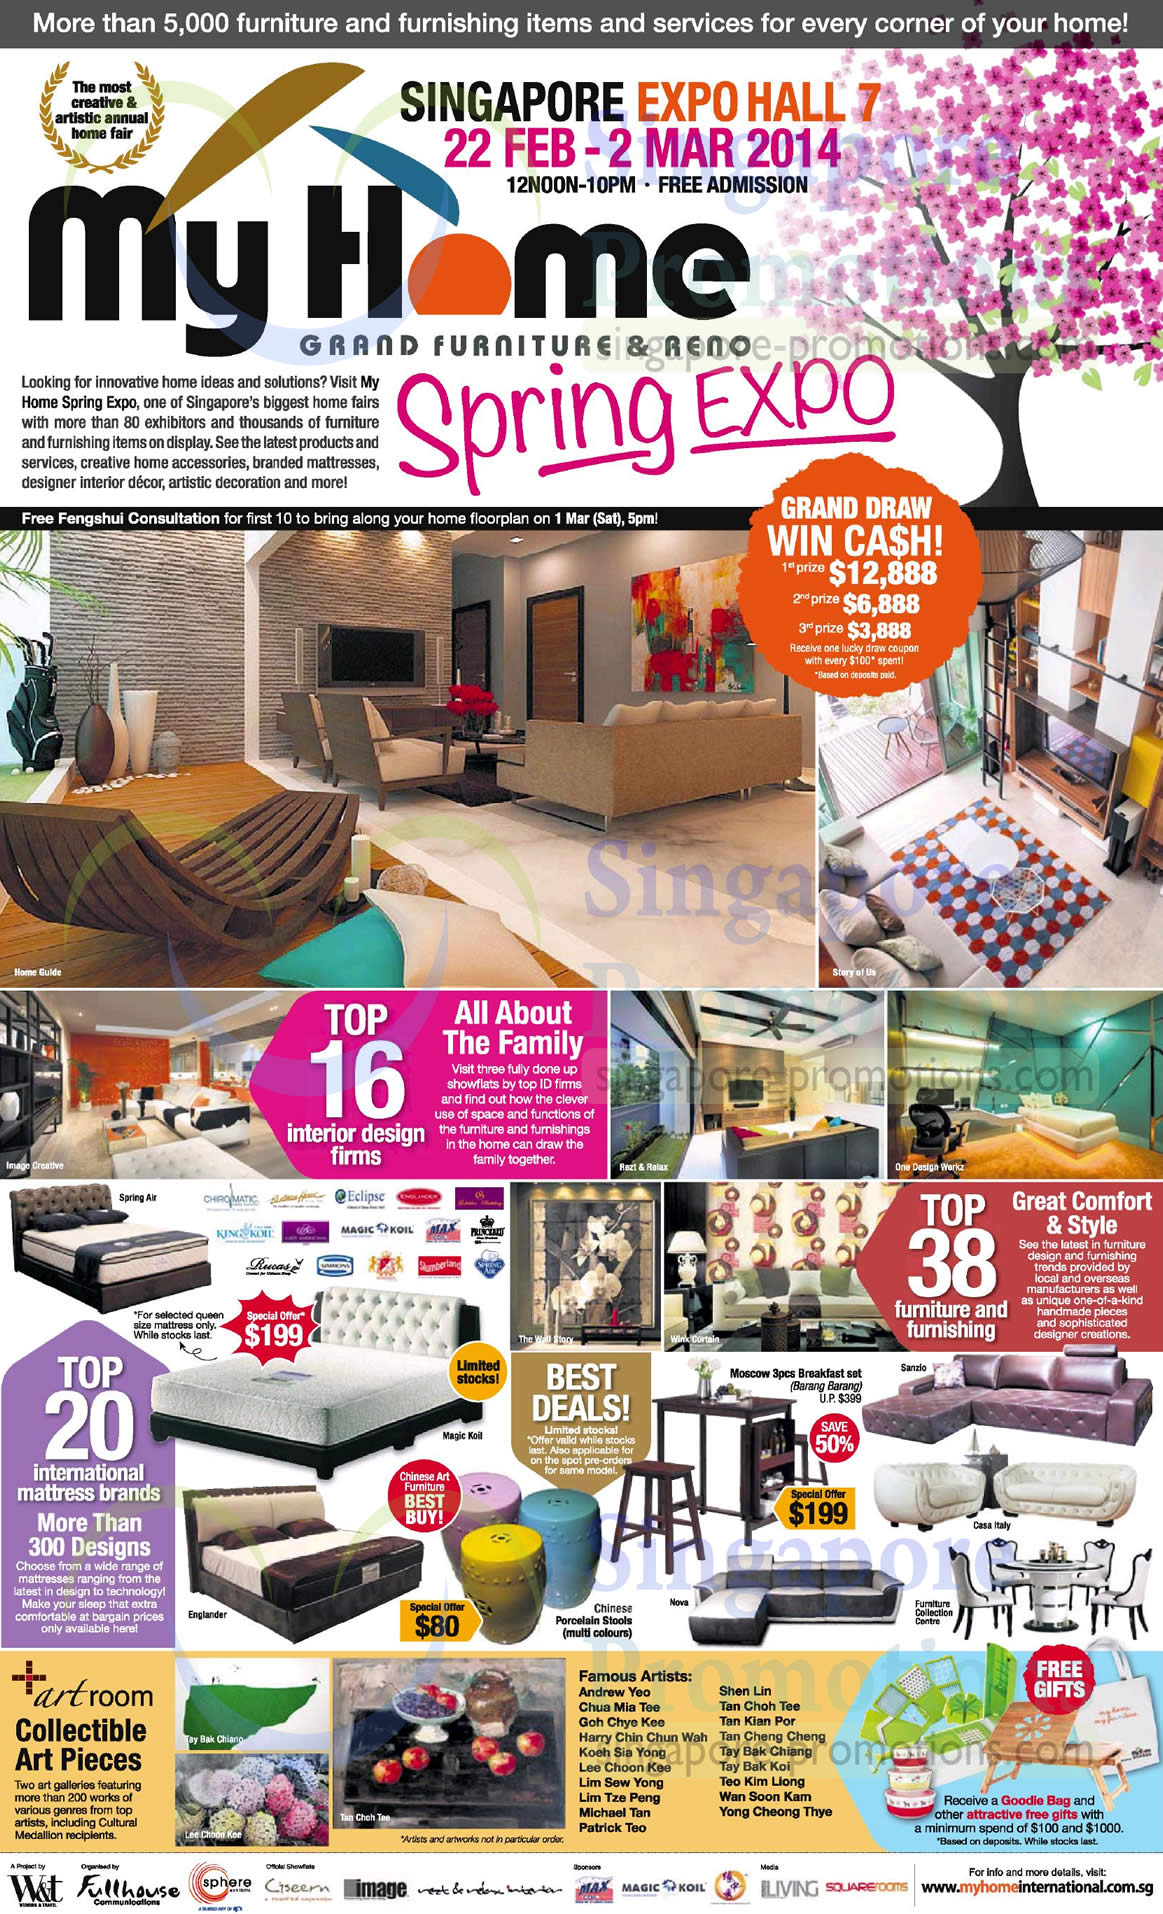 23 Feb Lucky Draw Interior Design Mattress Brands